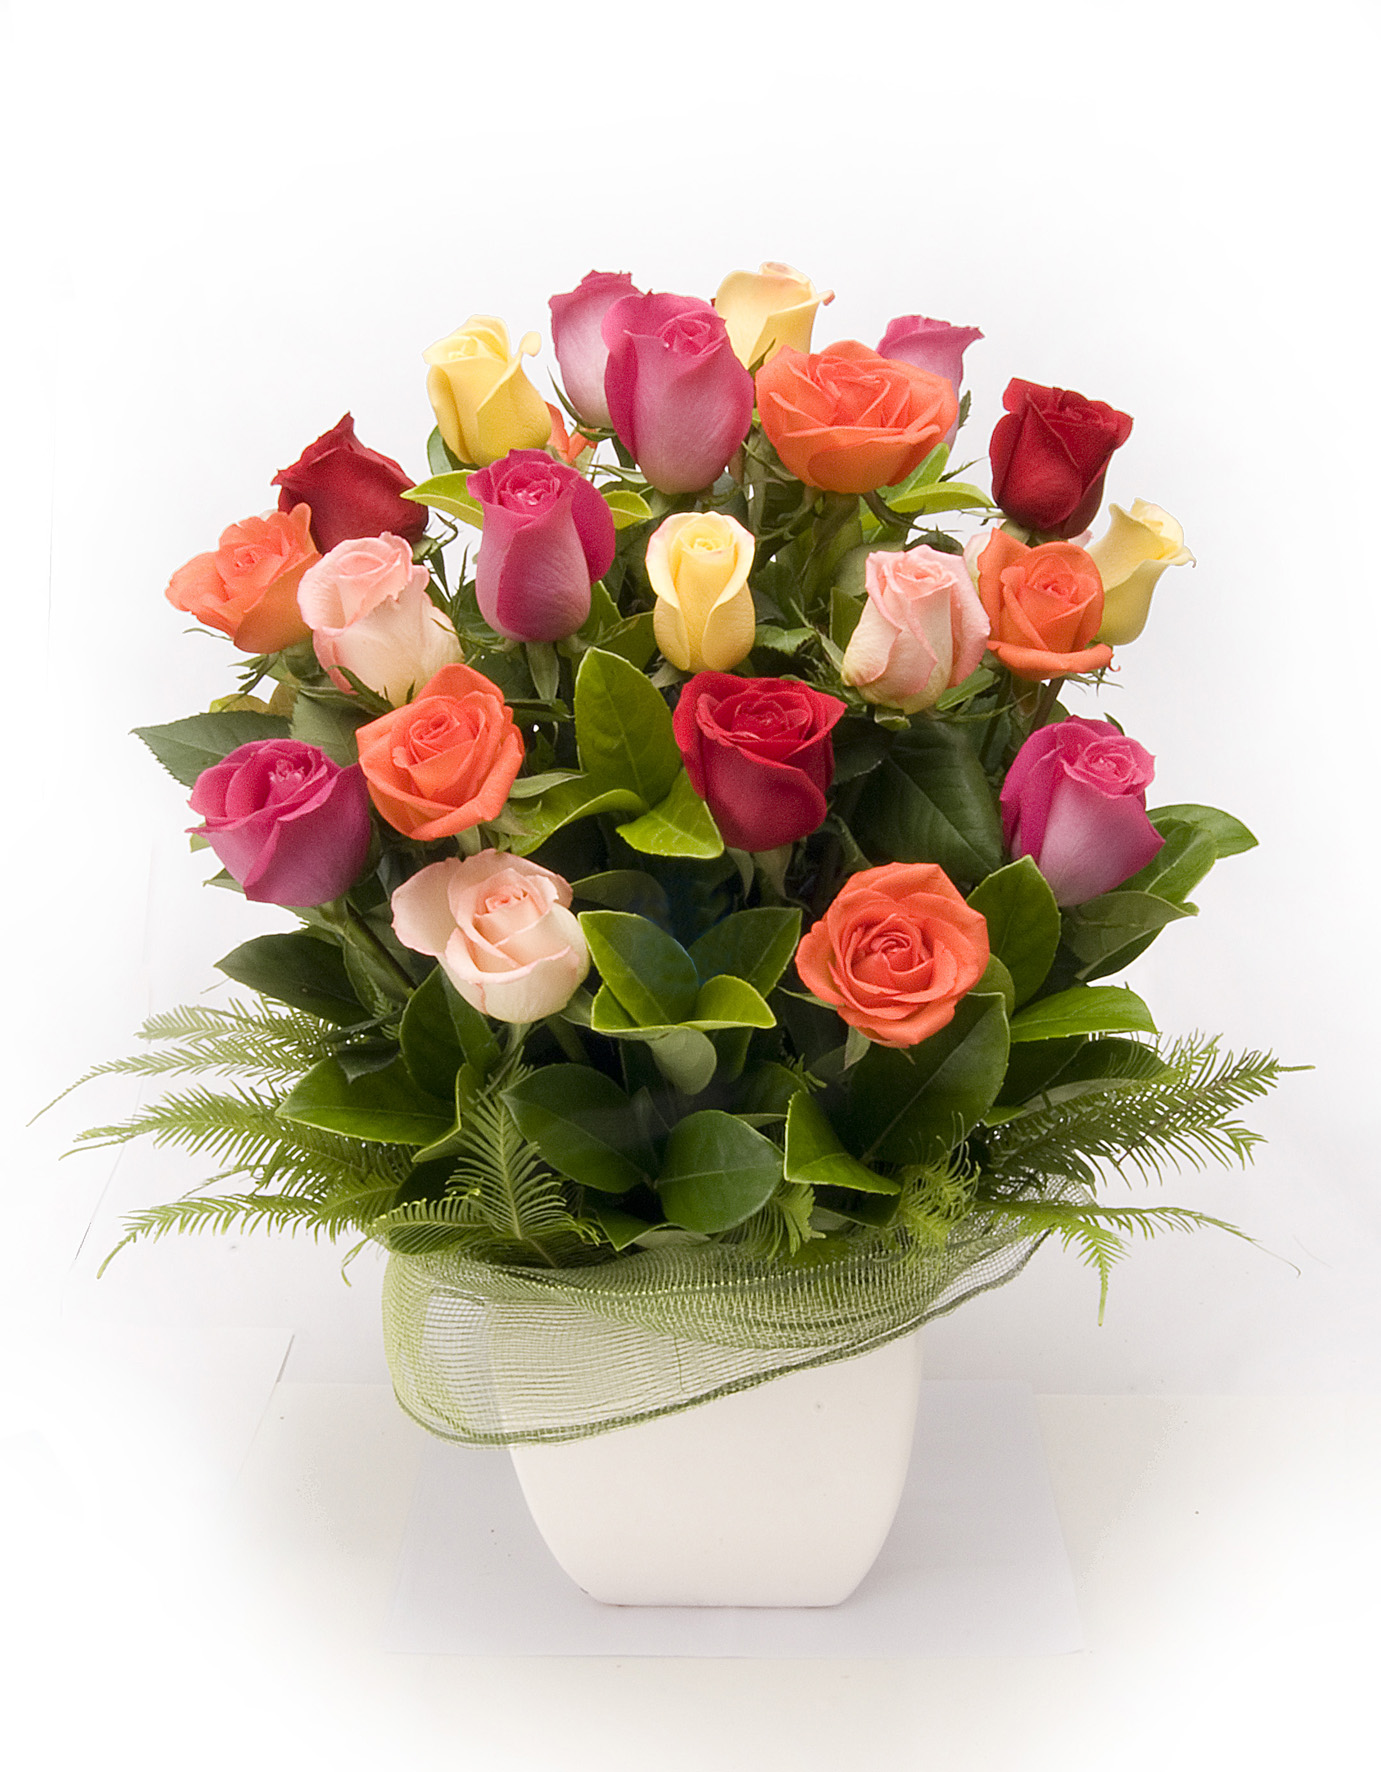 Warringah Florist coloured roses